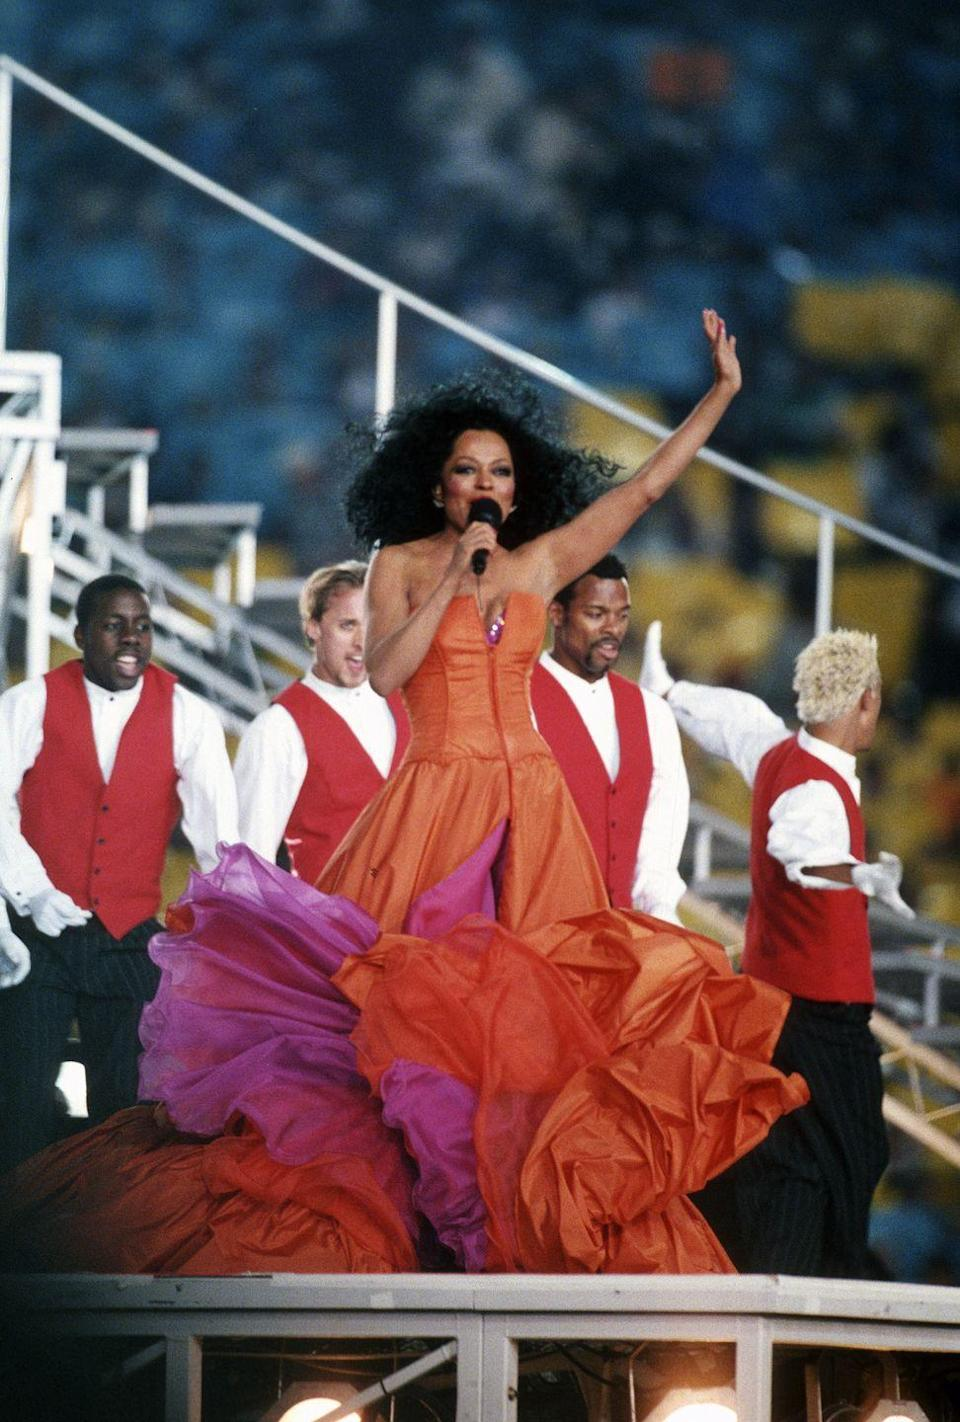 <p>Meanwhile, the living legend known as Diana Ross performed in 1996 and was the first person to really introduce the idea of a medley of hits to the show. More importantly, she wore this <em>incredible</em> dress. I wants it.</p>